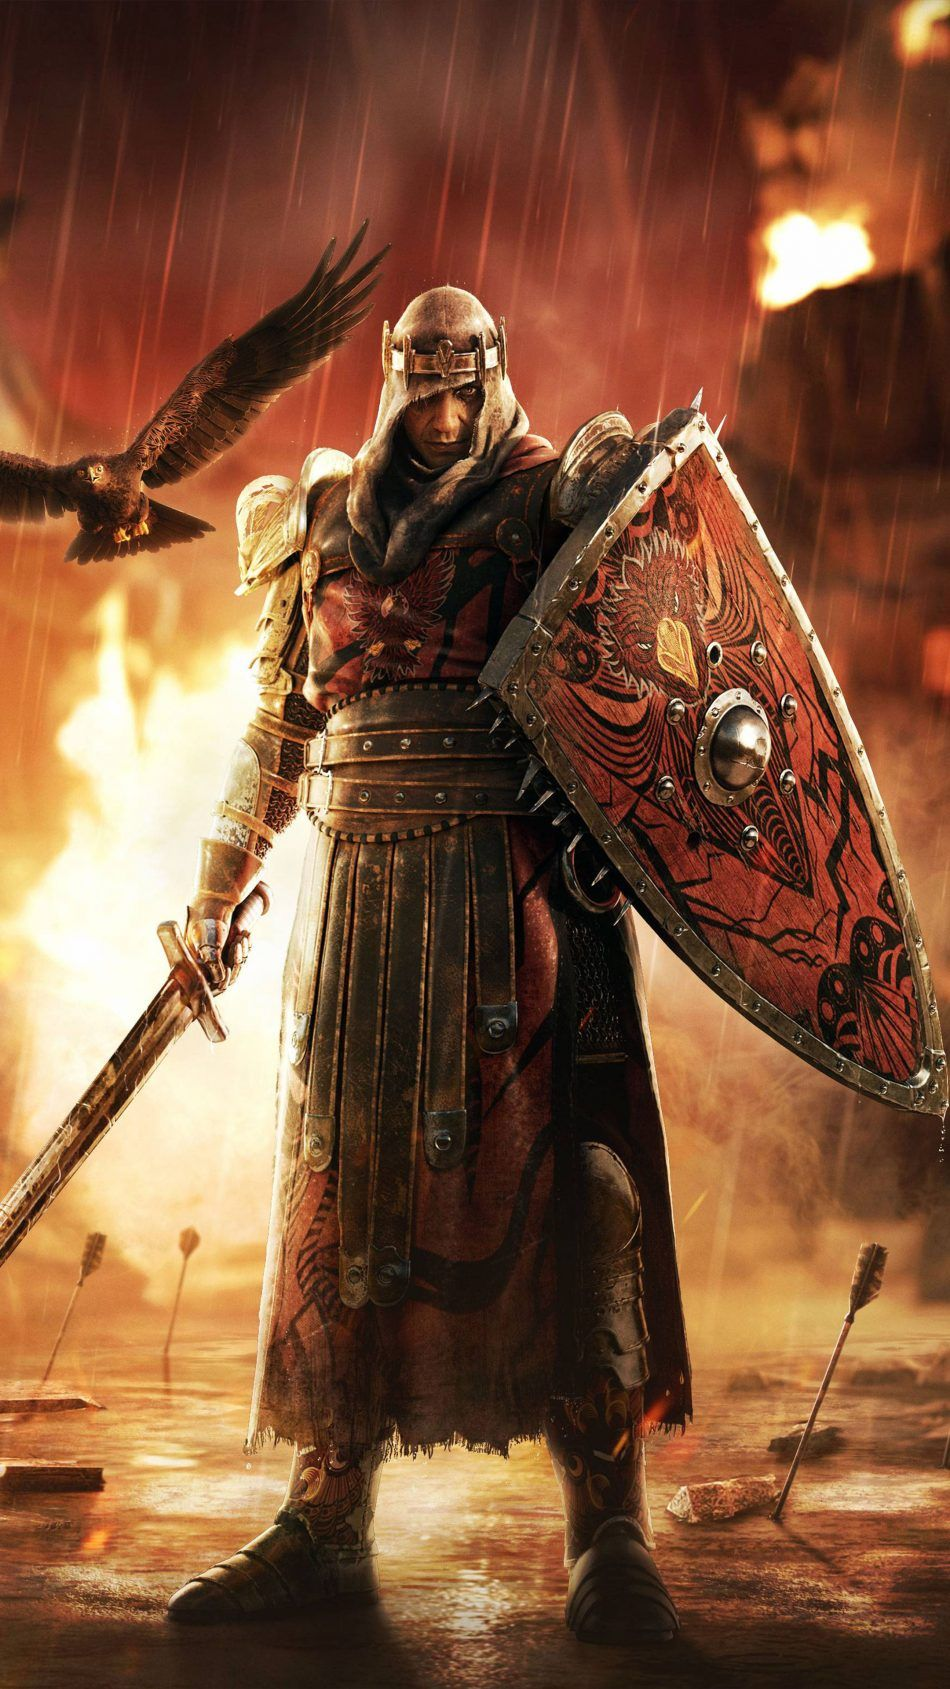 For Honor Game Warrior Sword 4k Ultra Hd Mobile Wallpaper In 2020 For Honor Characters For Honor Armor For Honour Game